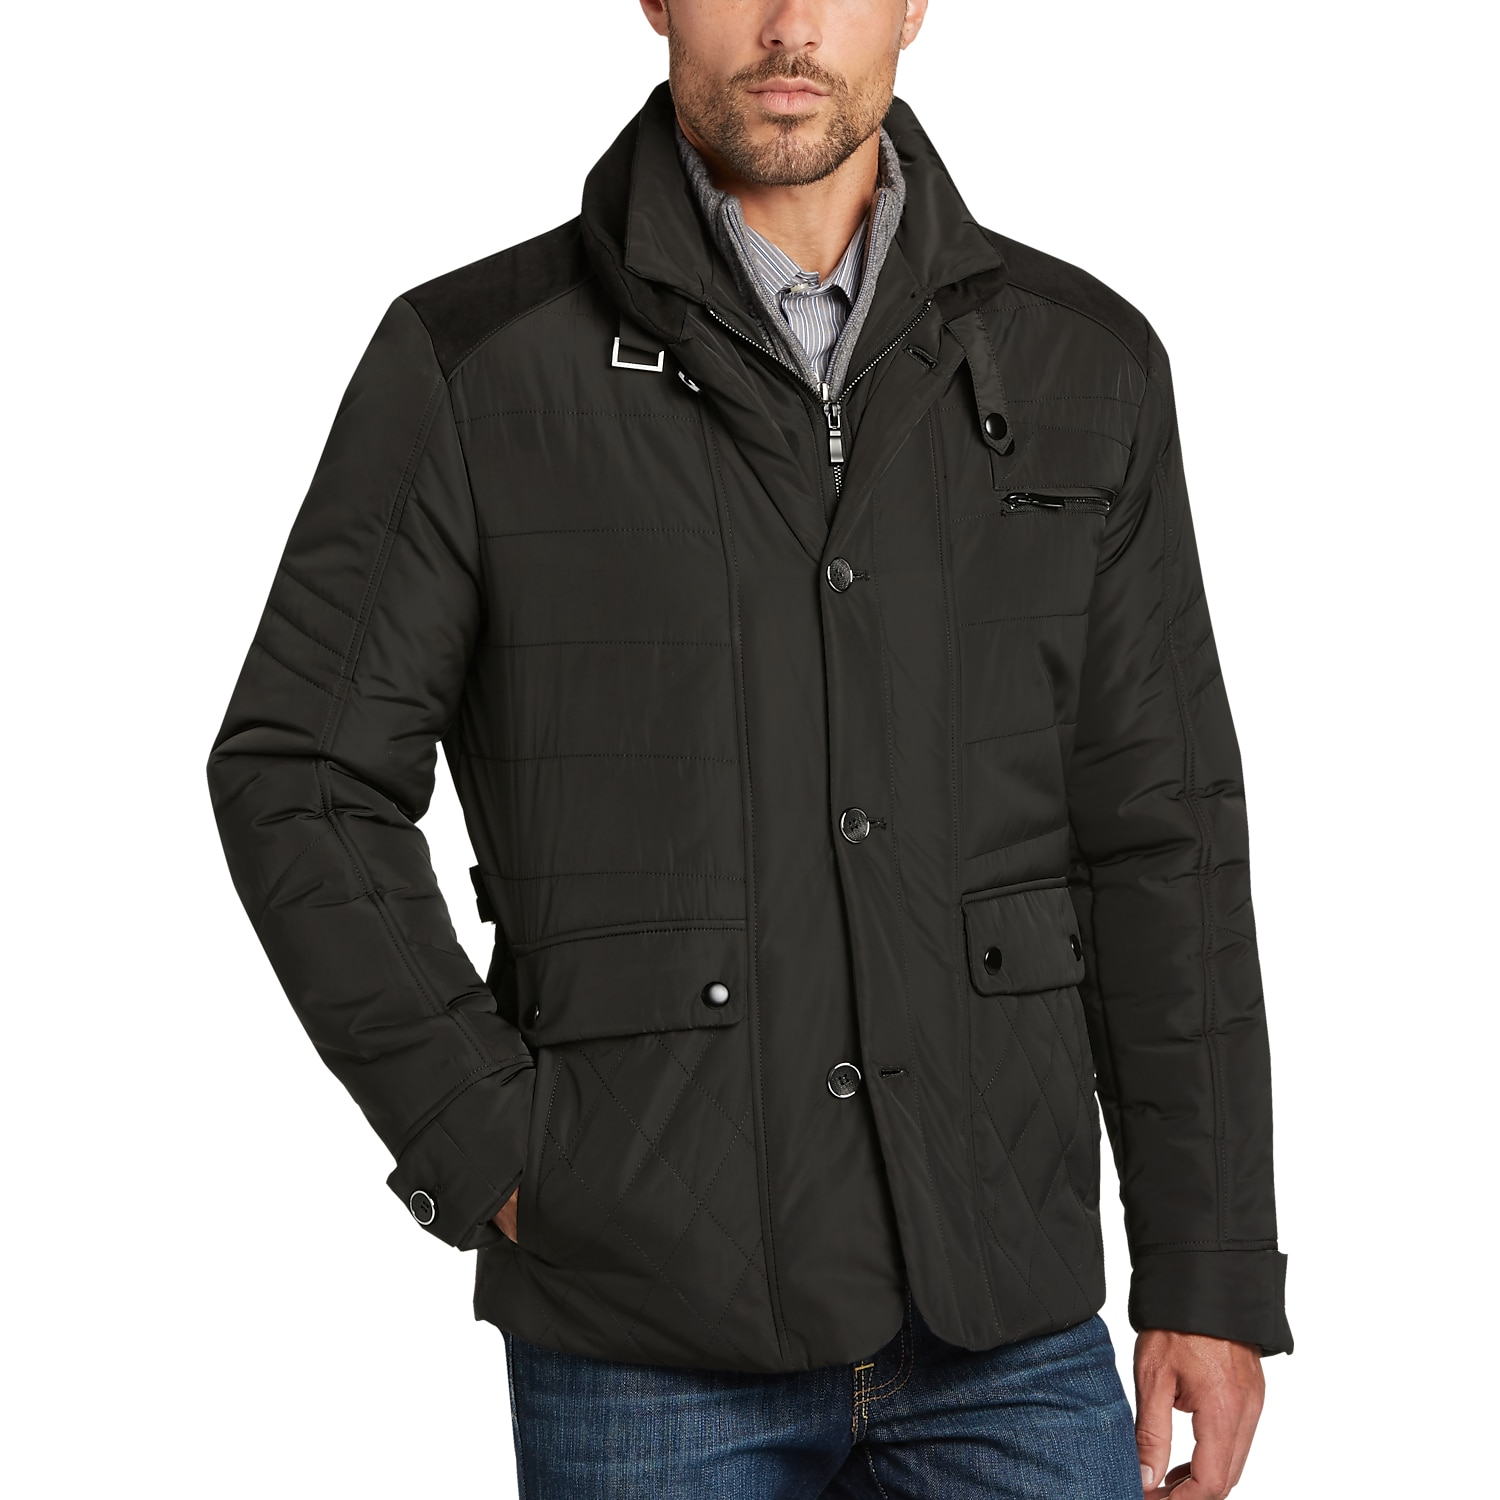 Free shipping on men's jackets & coats at hitseparatingfiletransfer.tk Shop bomber, trench, overcoat, and pea coats from Burberry, The North Face & more. Totally free shipping & returns.